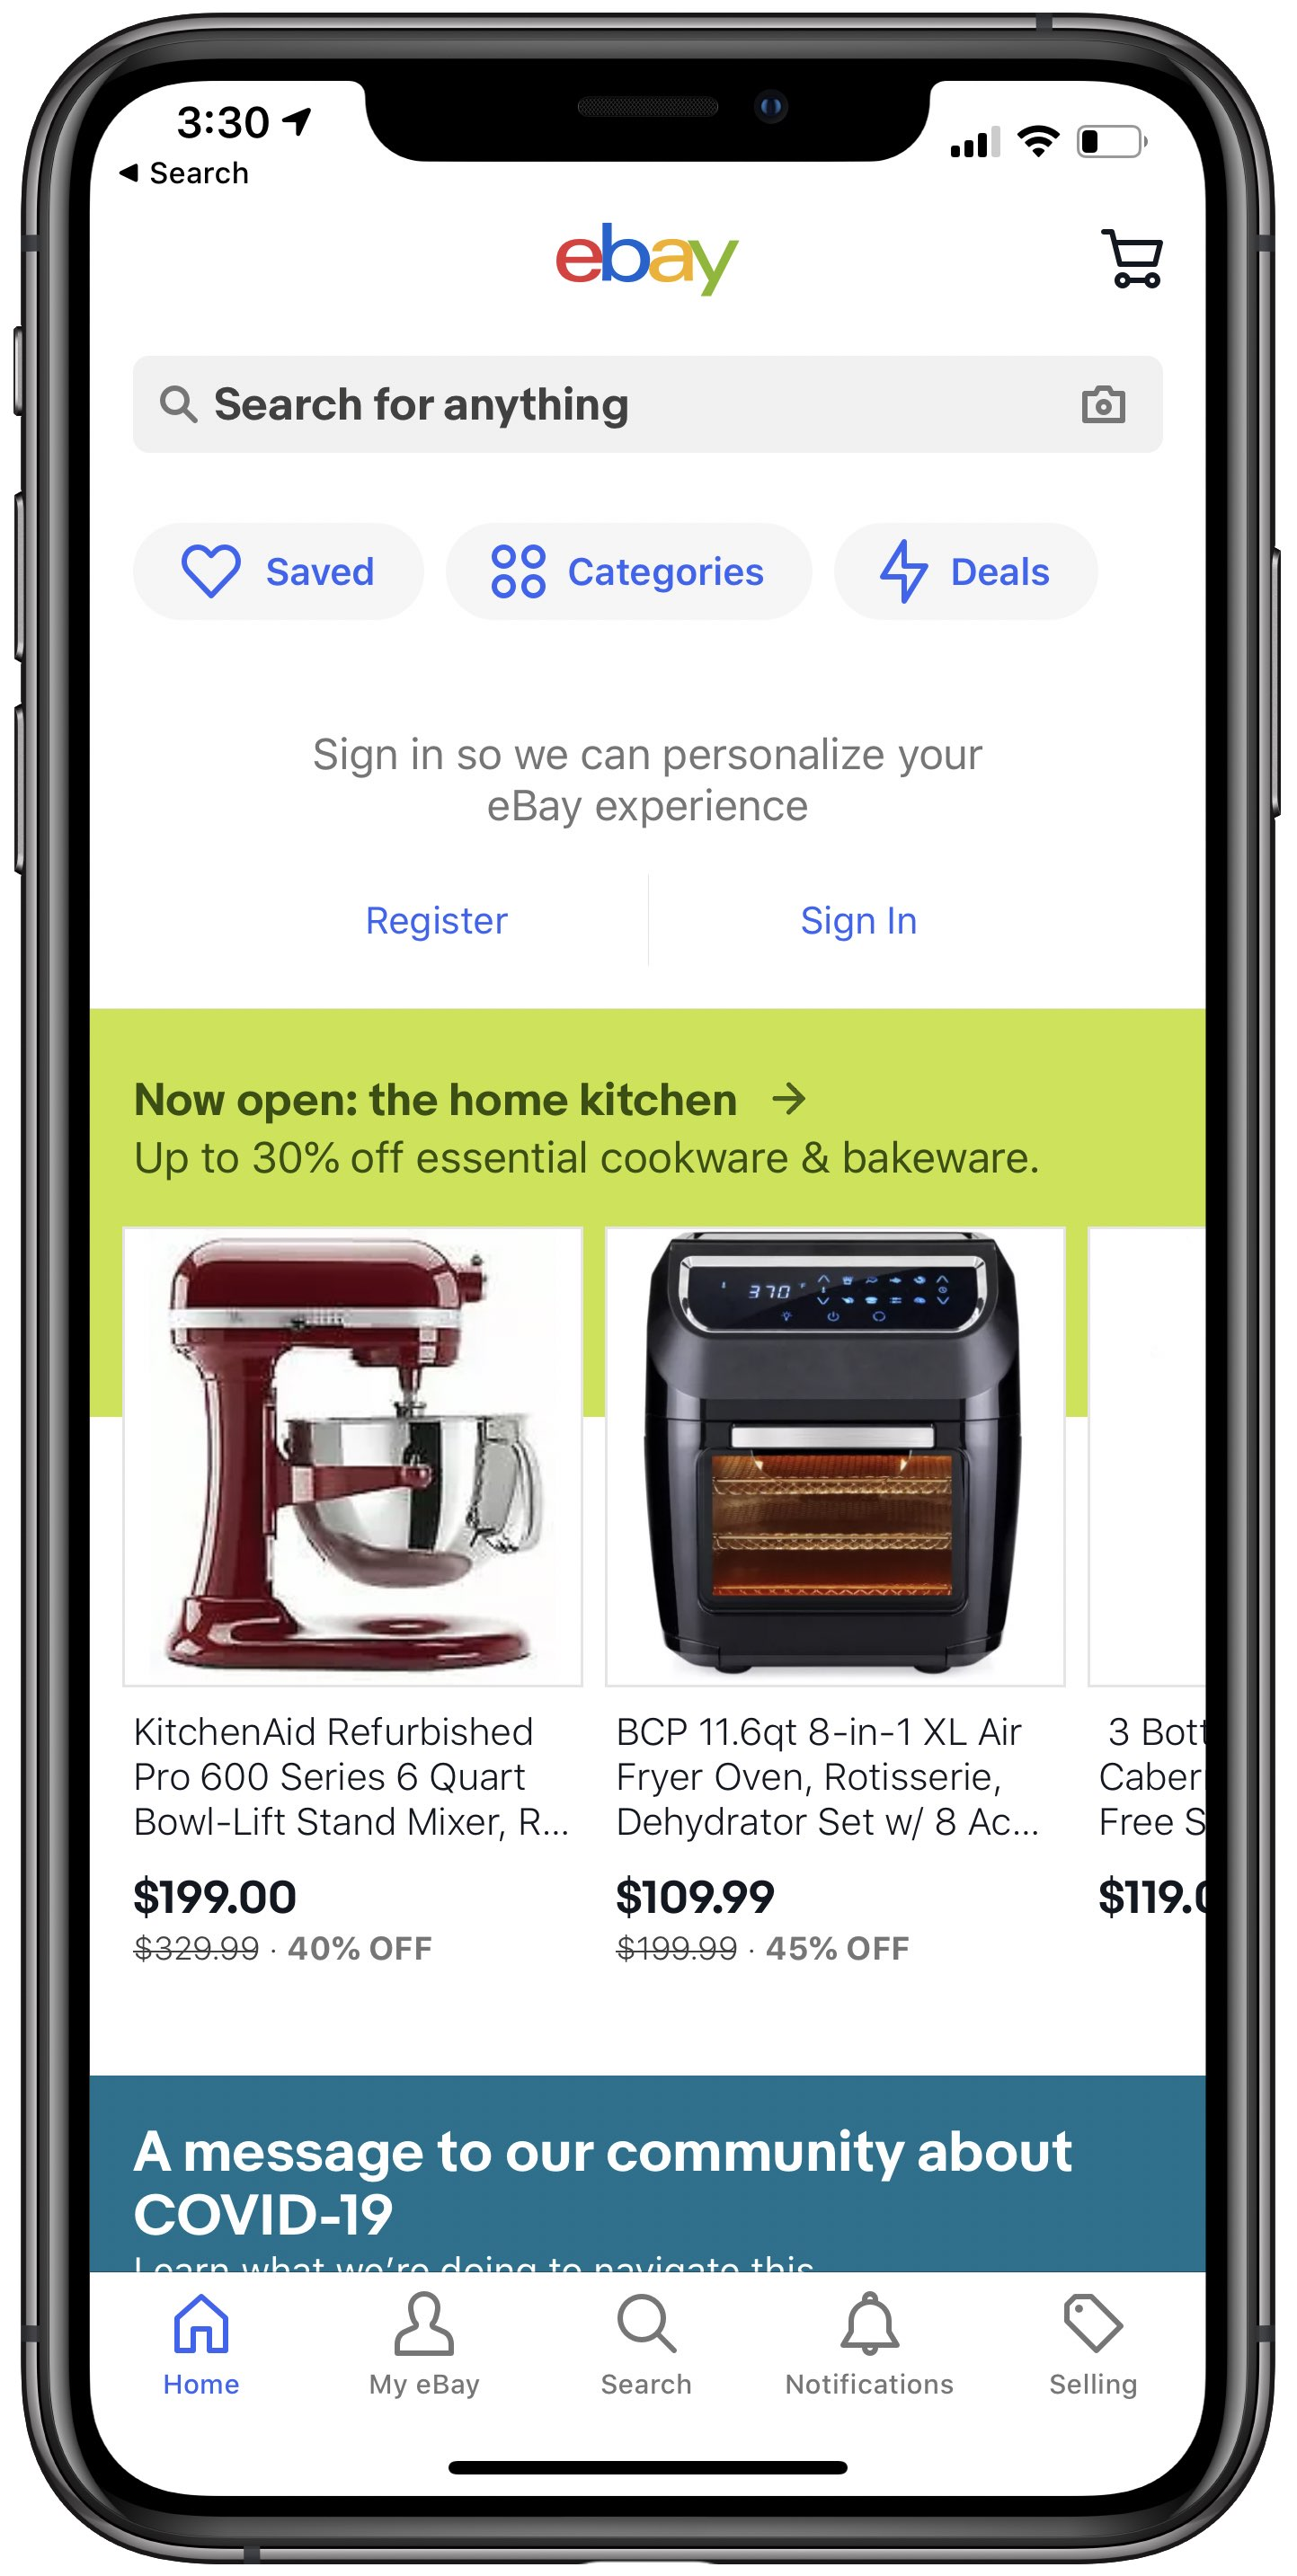 Ebay For Ios Implements The Private Sign In With Apple Option Adds Other New Features